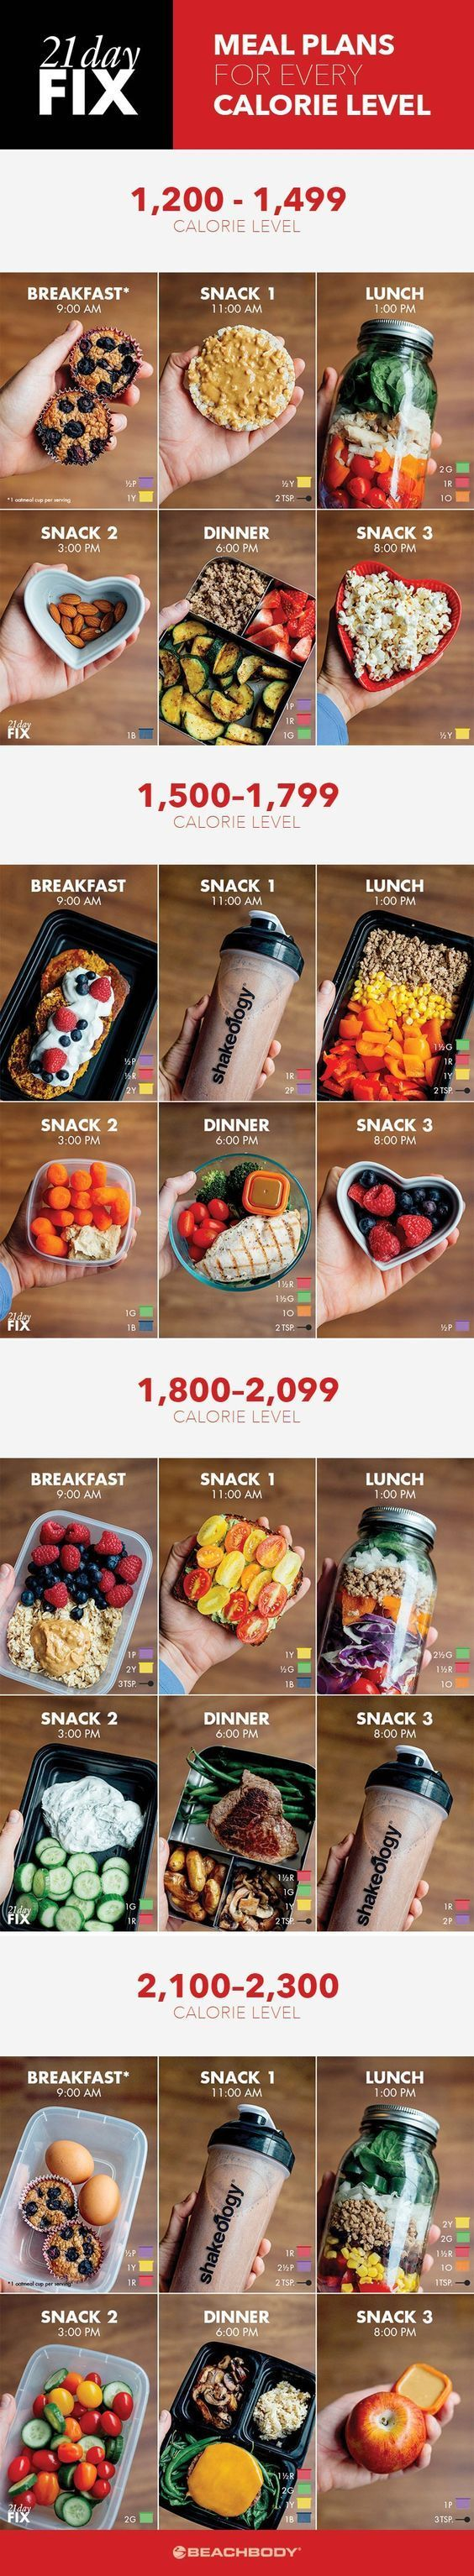 If you're on the 21 Day Fix meal plan, check out these quick and easy meal pre...